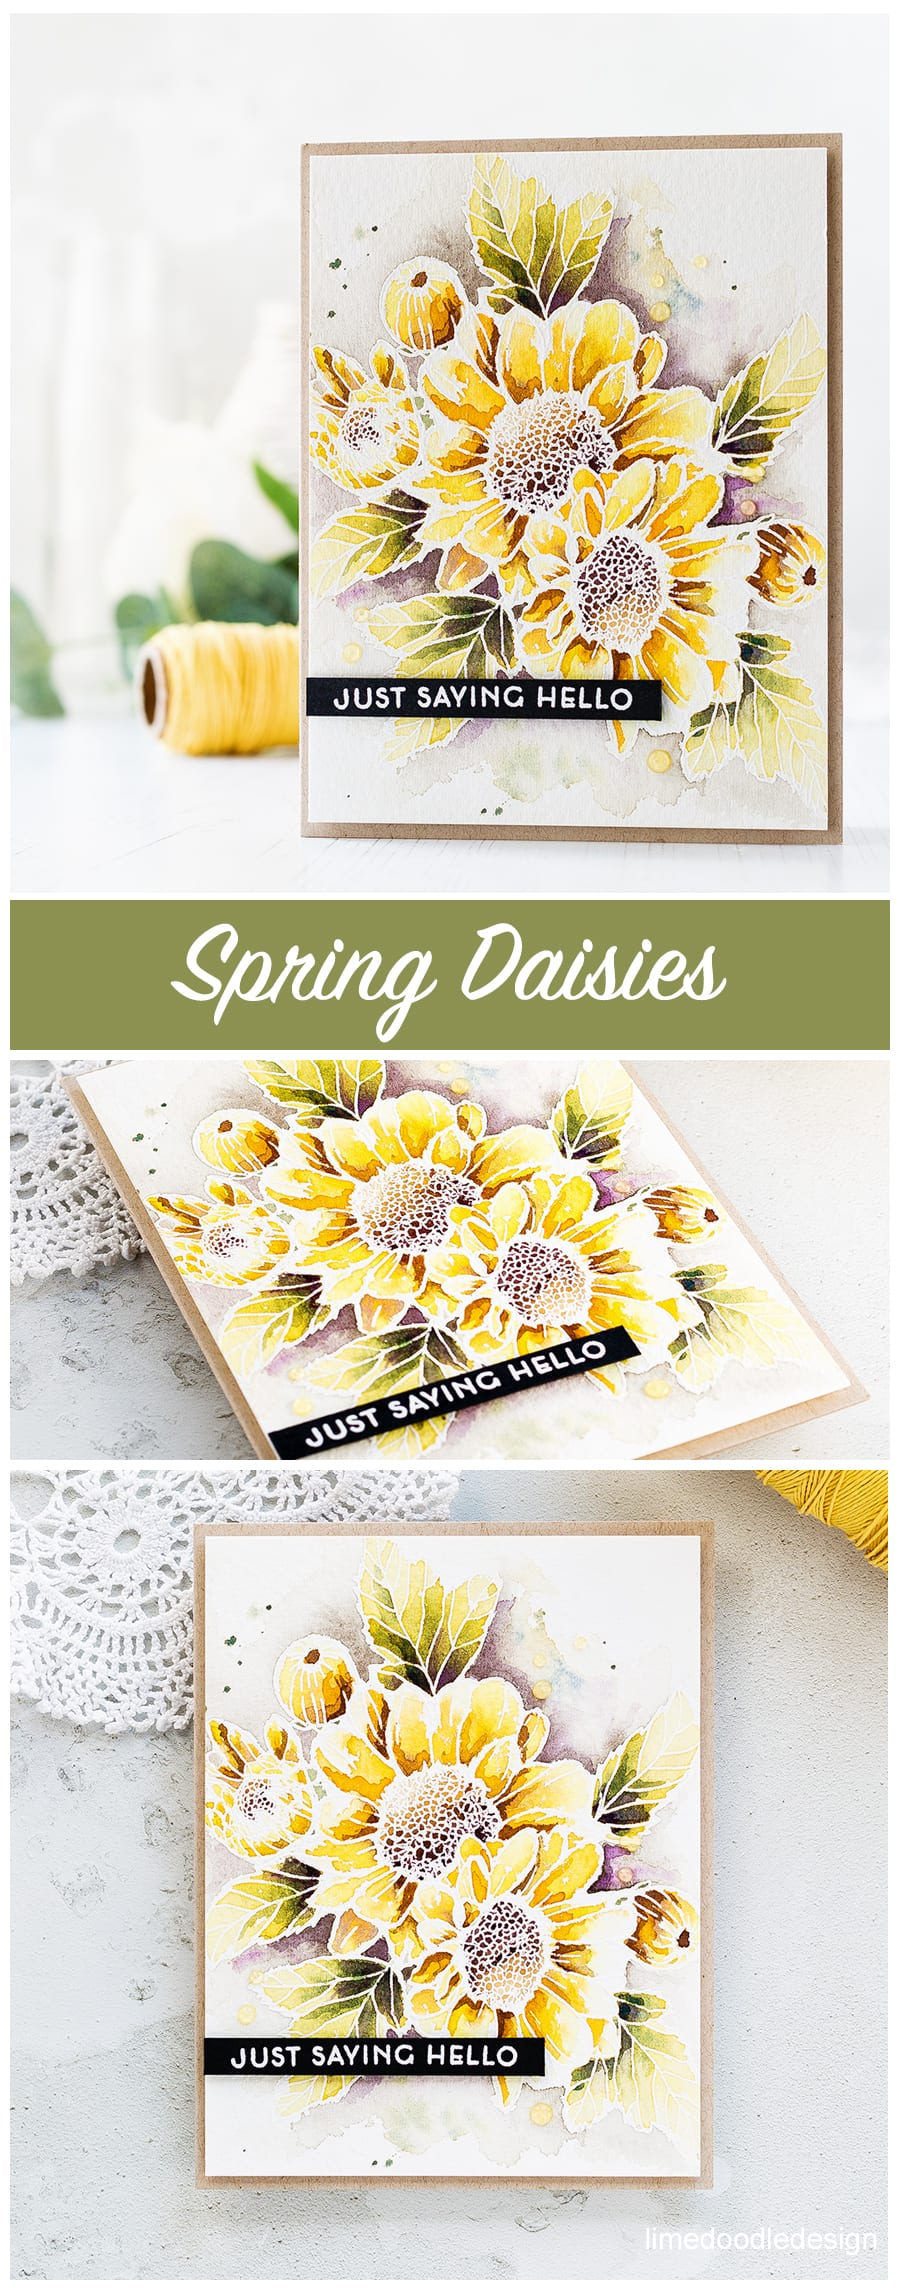 Just saying hello - watercoloured Altenew Spring Daisy card by Debby Hughes. Find out more about this card by clicking on the following link: https://limedoodledesign.com/2017/04/altenews-3rd-anniversary-blog-hop-giveaway-winner/